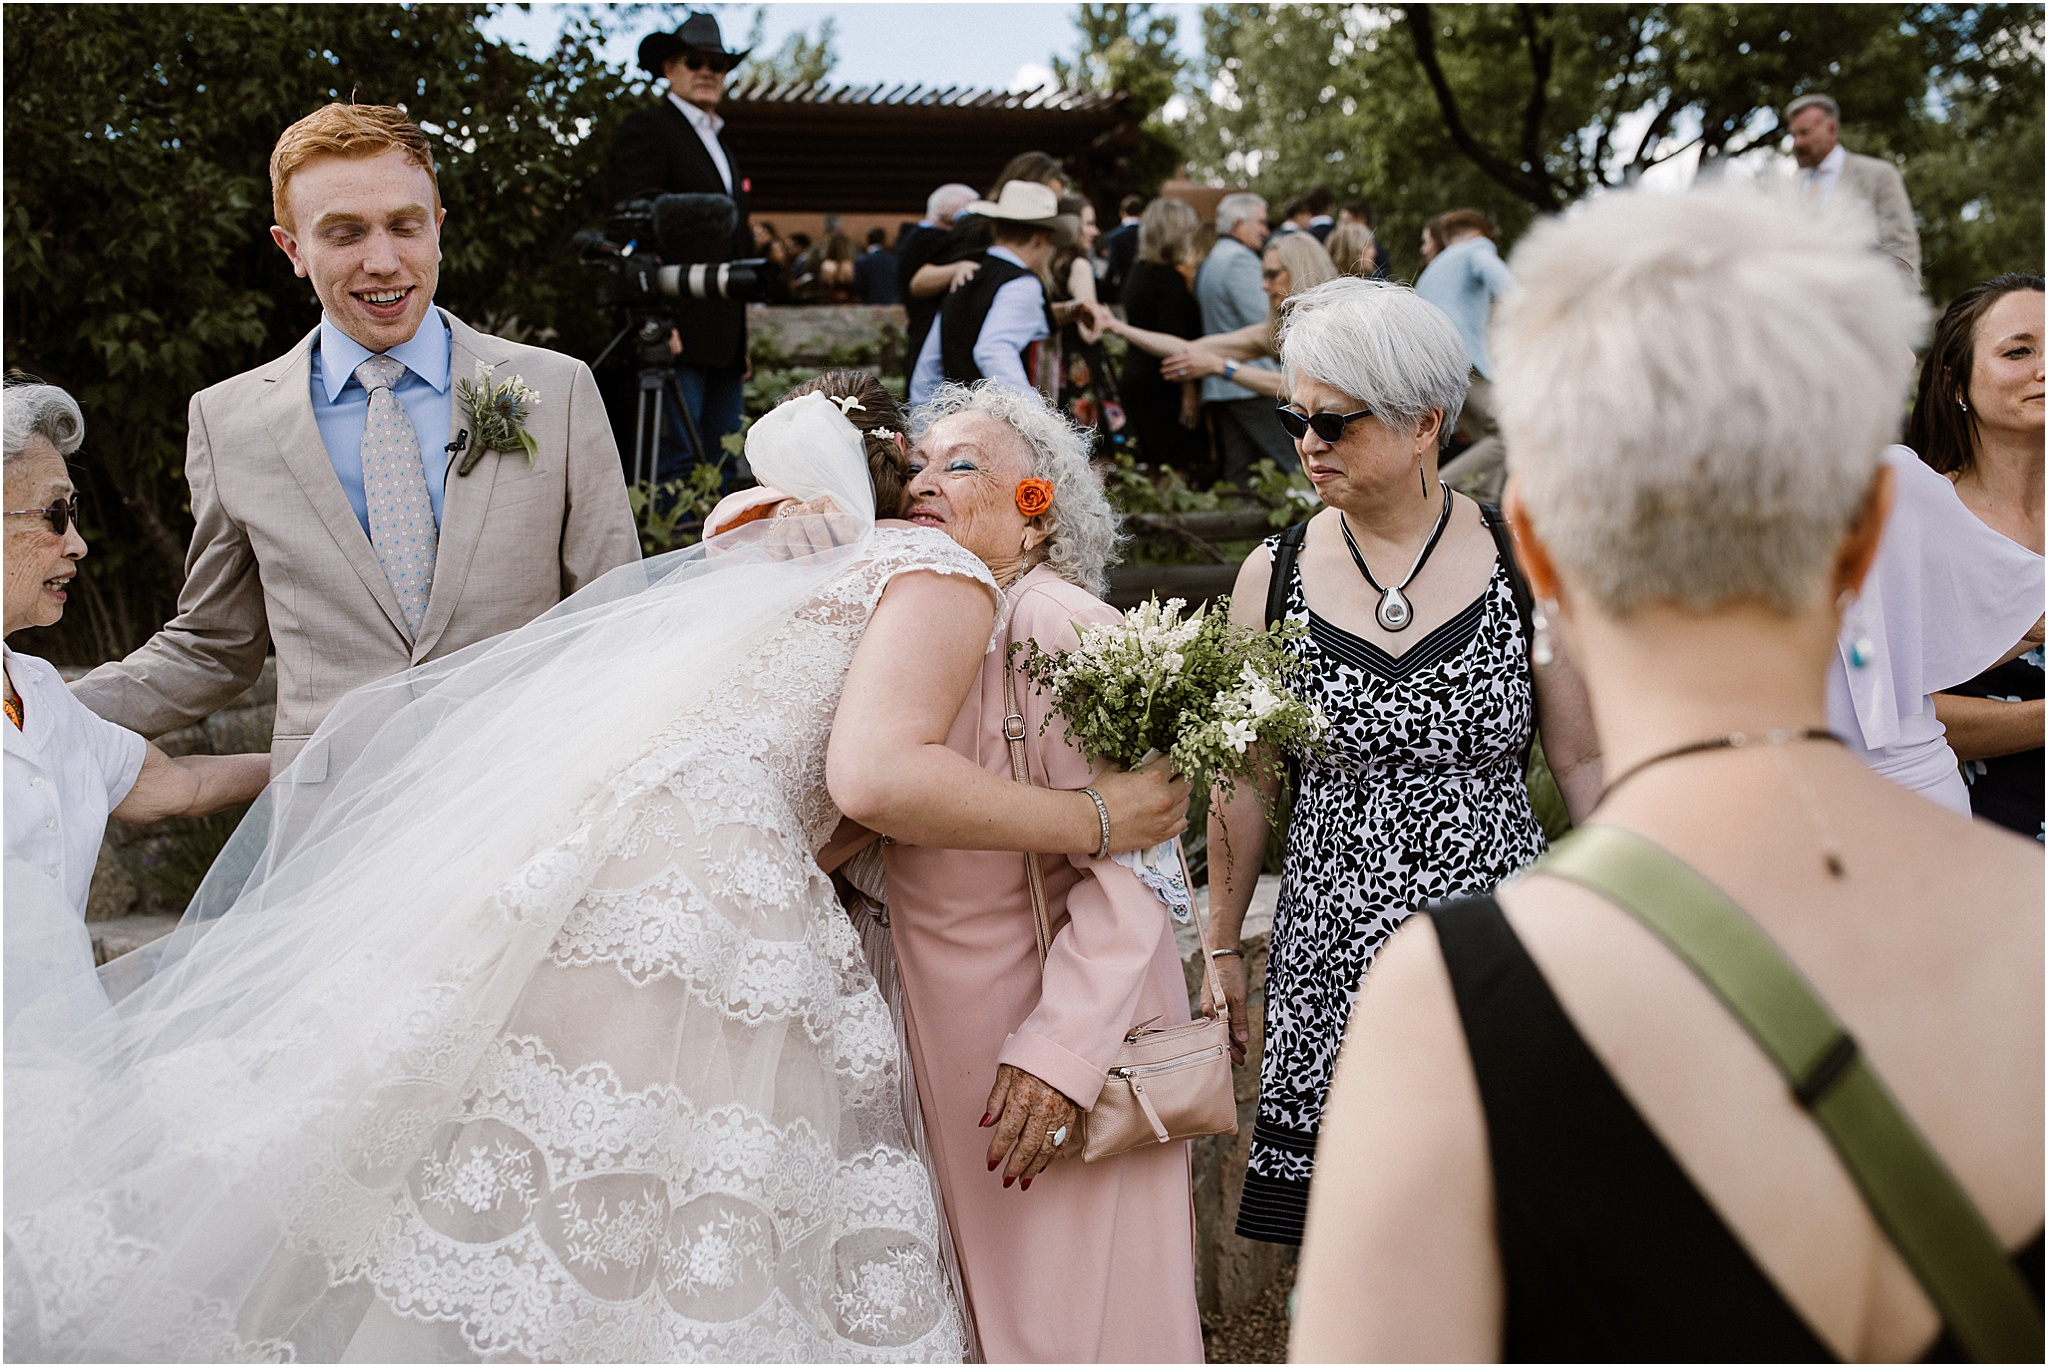 AMELIA_JASON_SANTA FE_ WEDDING_BLUE ROSE PHOTOGRAPHY74